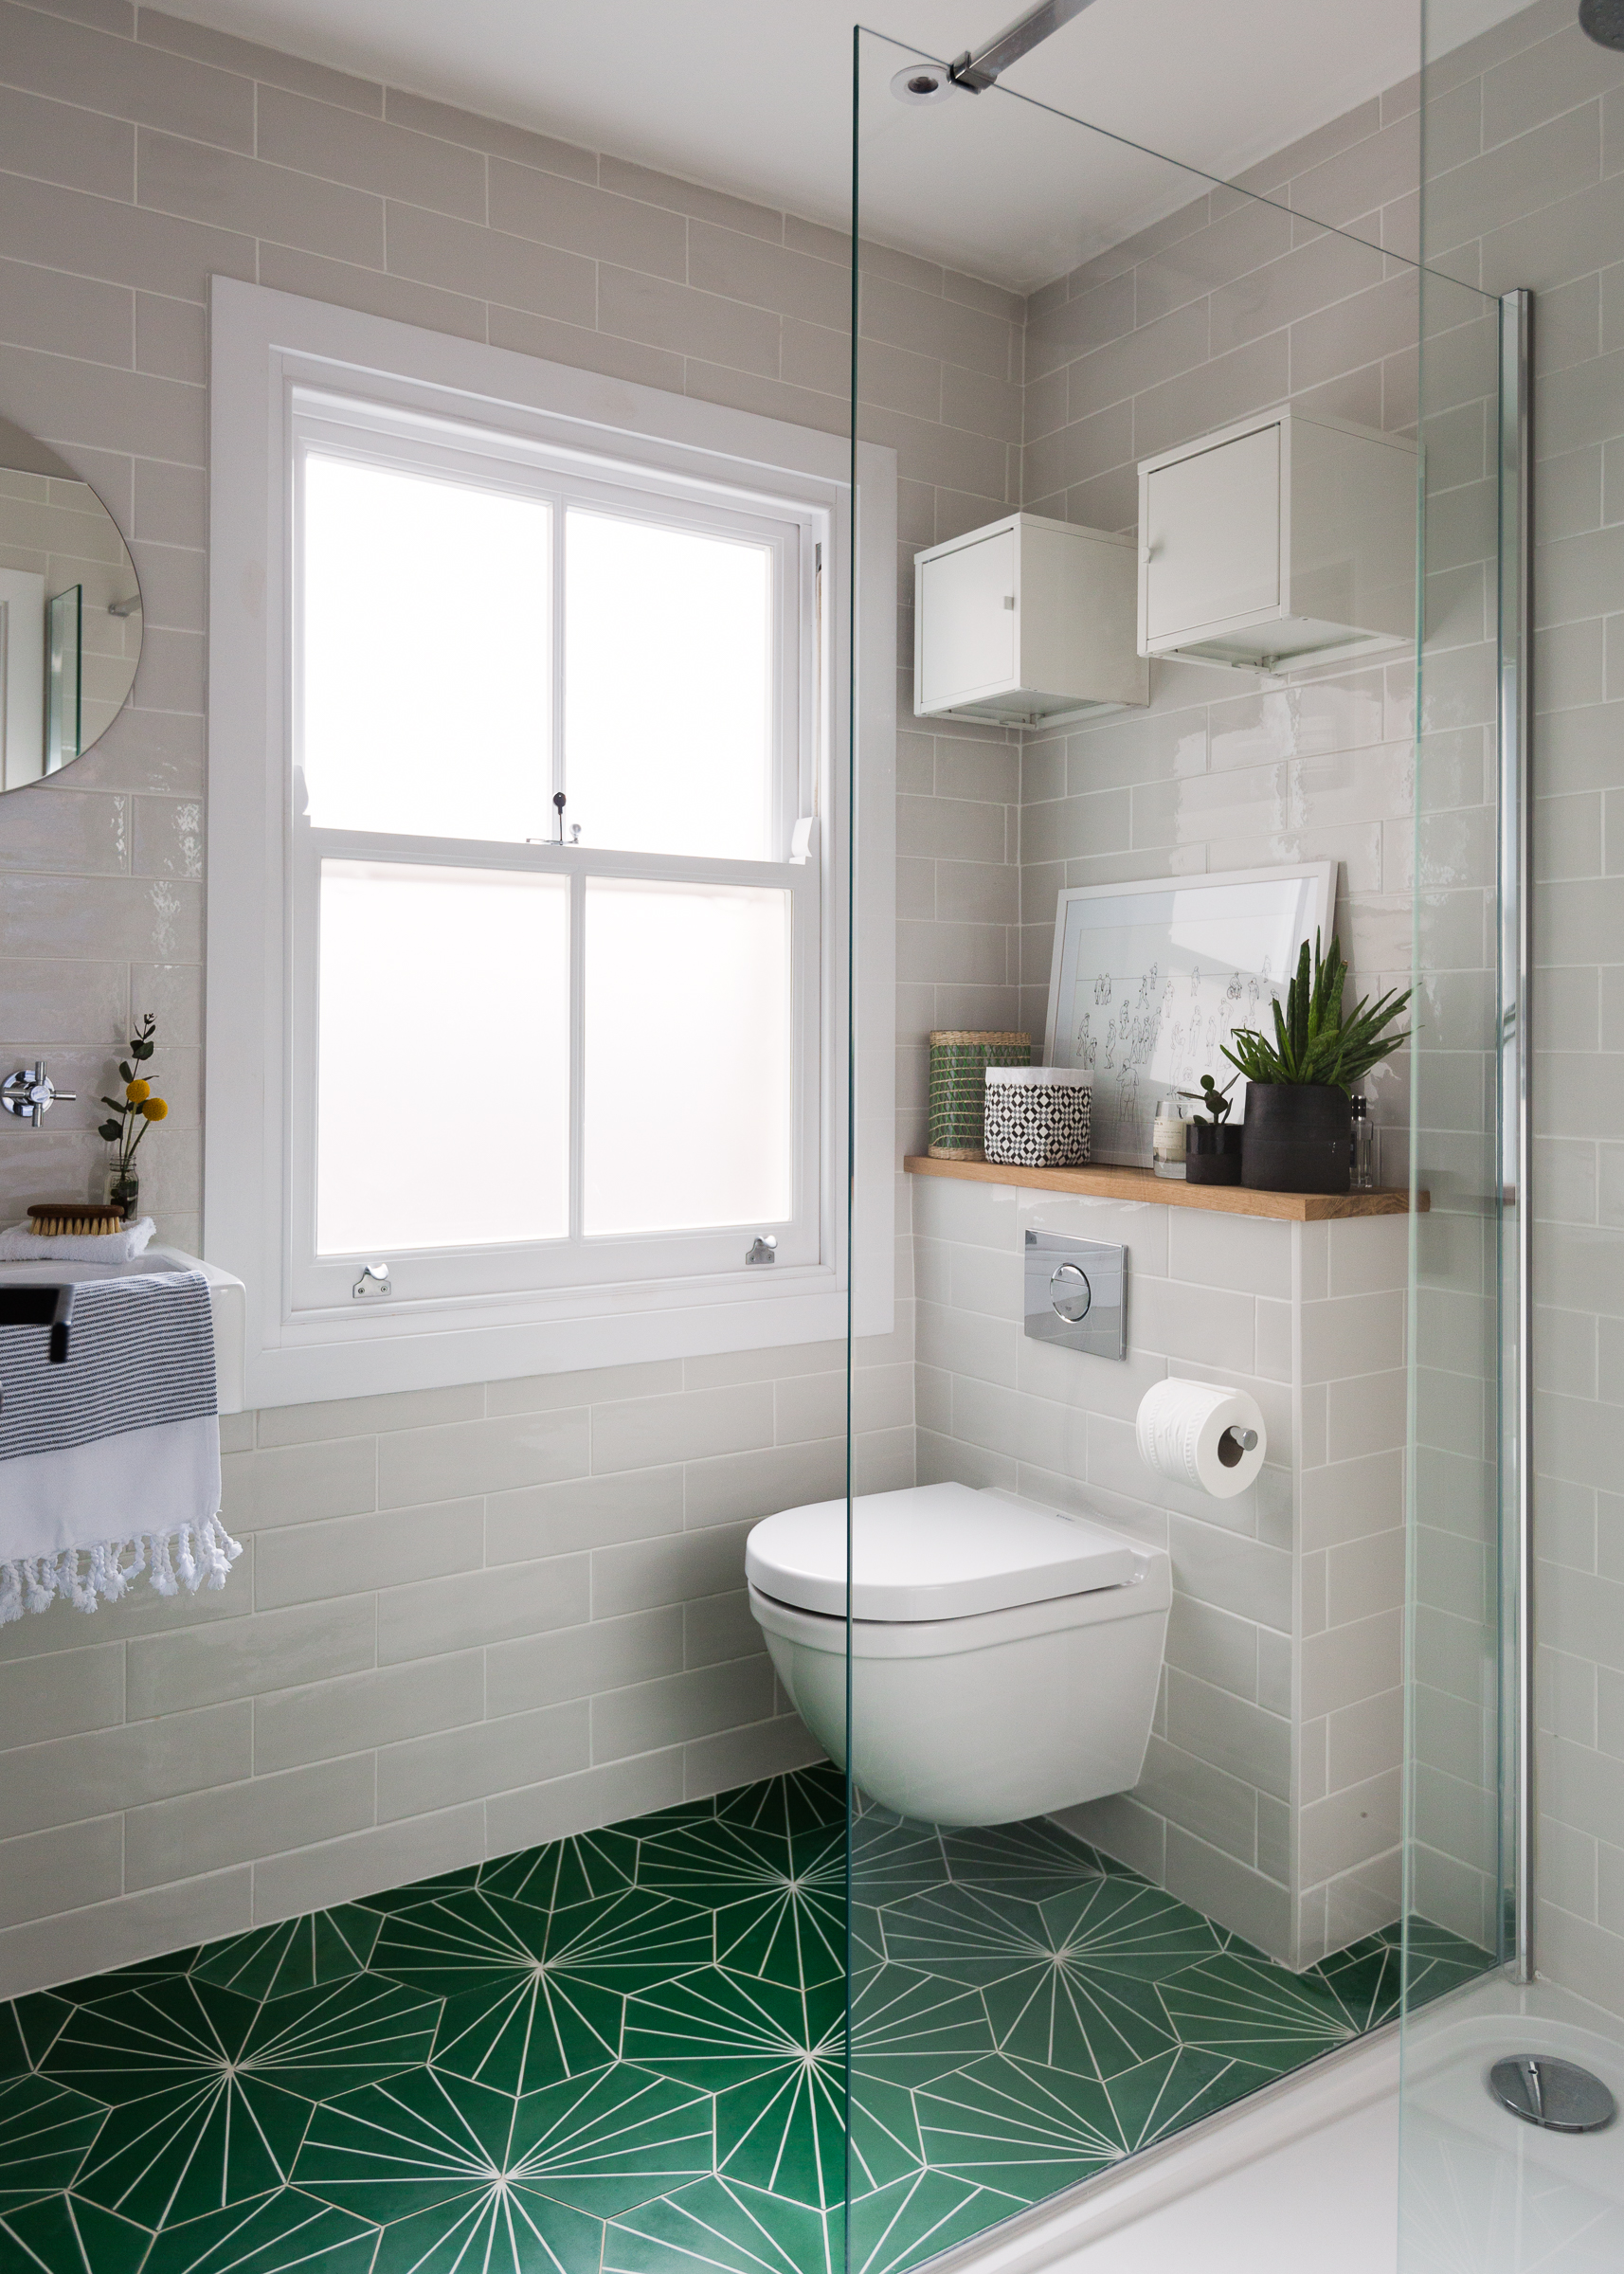 Strange Self Cleaning Toilets Do They Really Work Apartment Therapy Ibusinesslaw Wood Chair Design Ideas Ibusinesslaworg